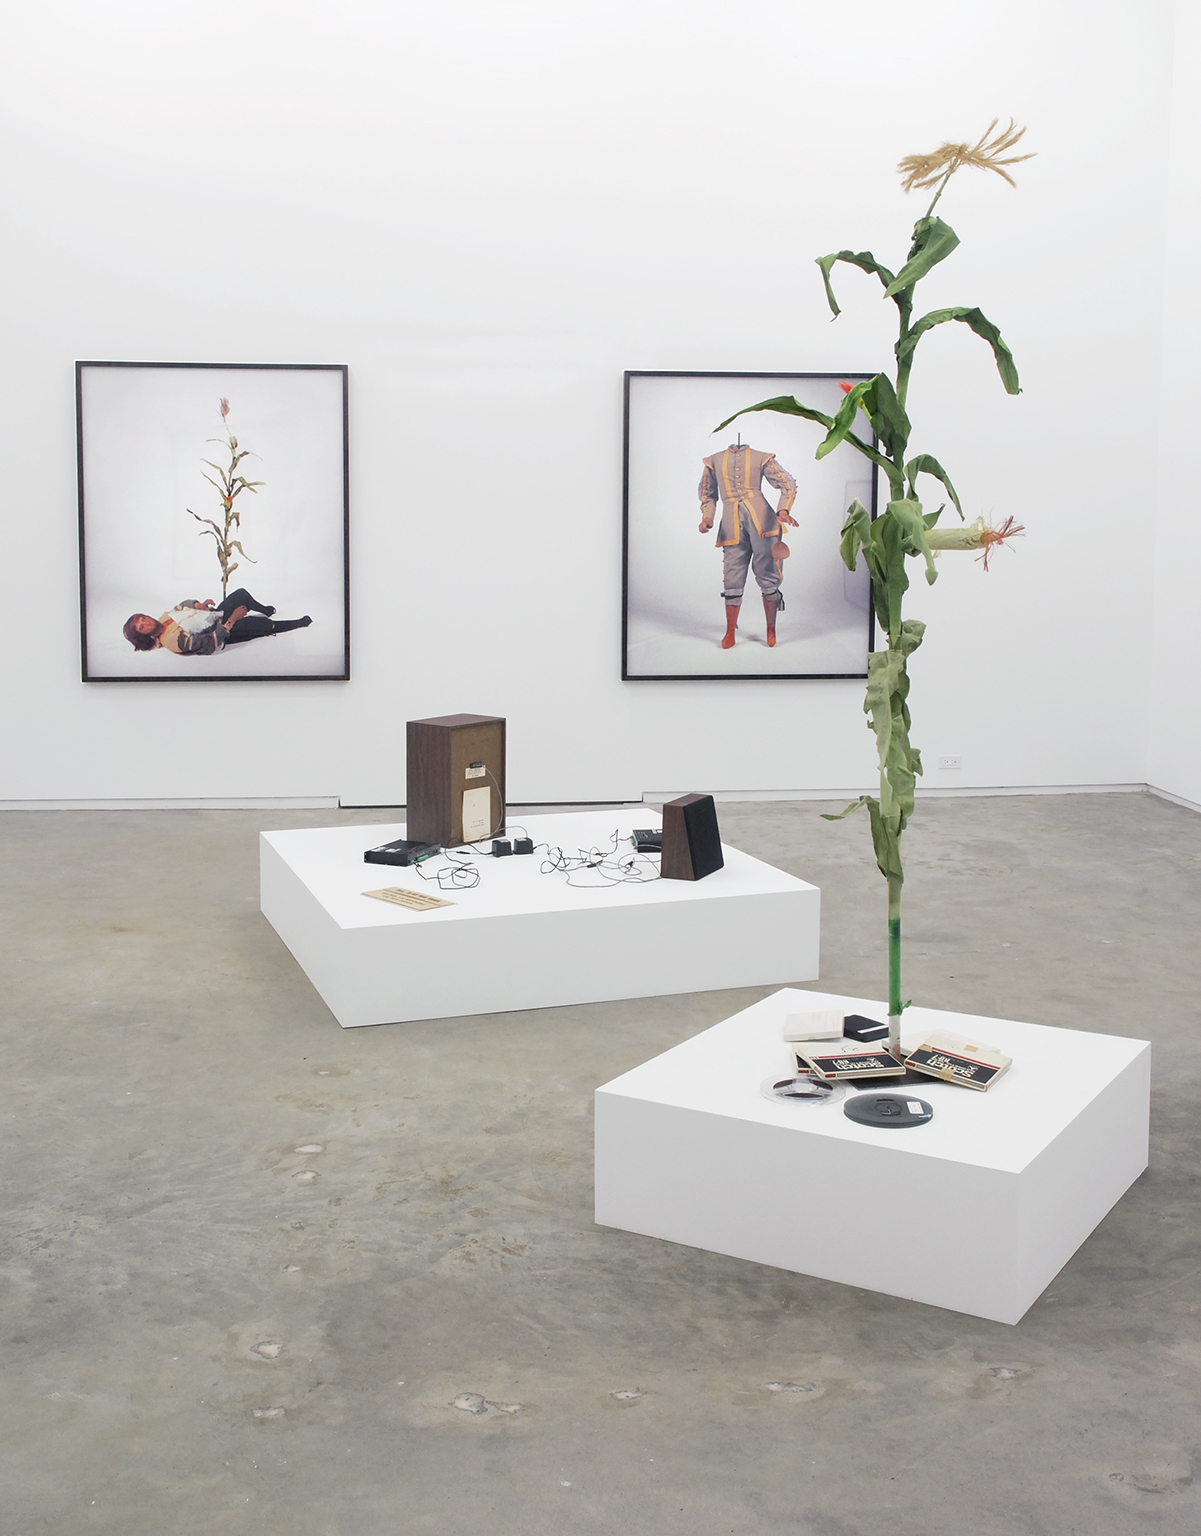 ​Sam Durant, installation view, ​Scenes from the Pilgrim Story: Natural History​, Catriona Jeffries, 2007 by